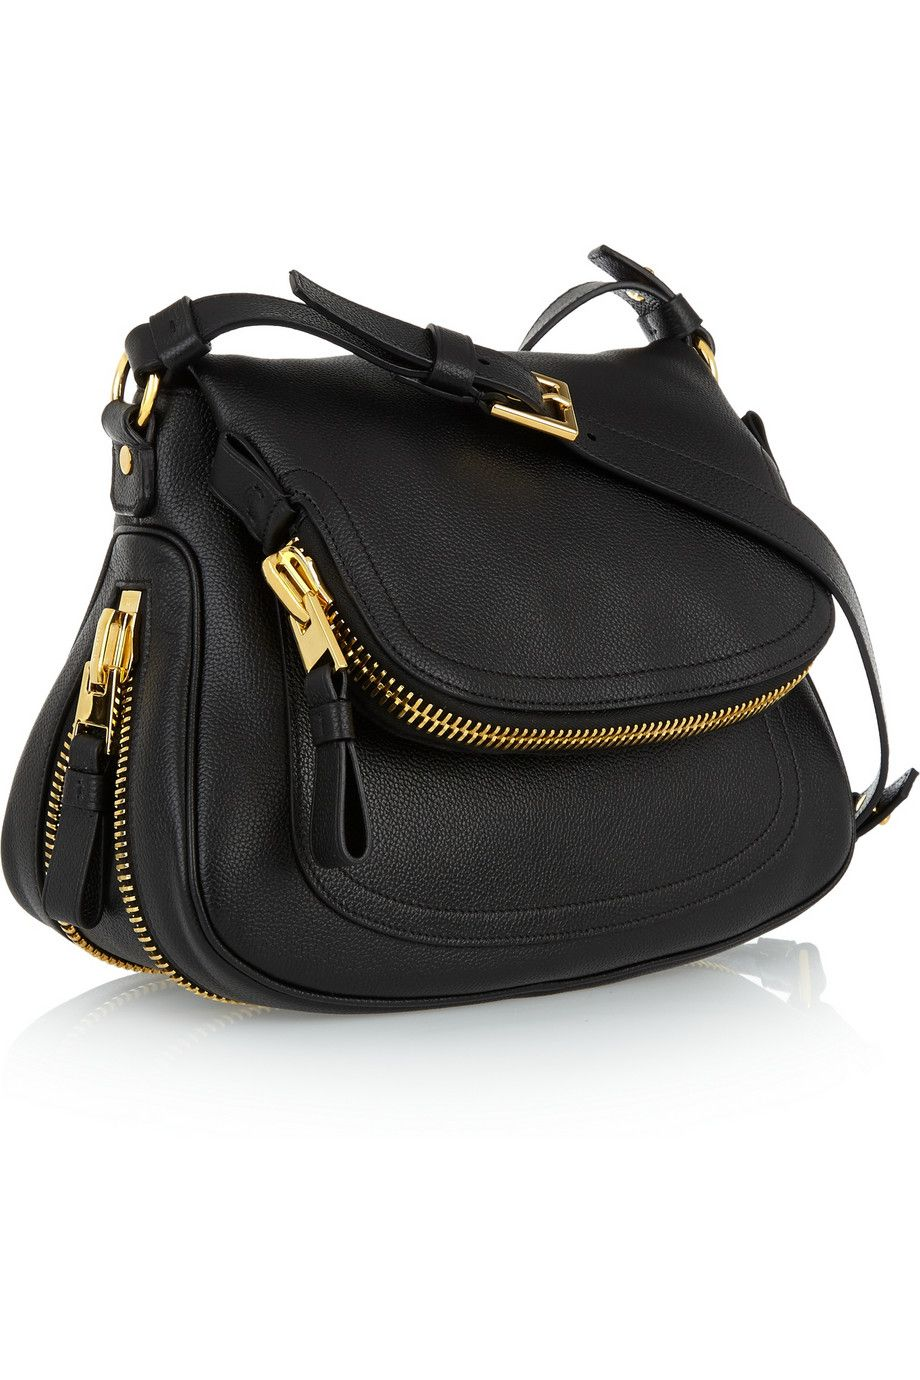 Tom Ford velvet cross body bag